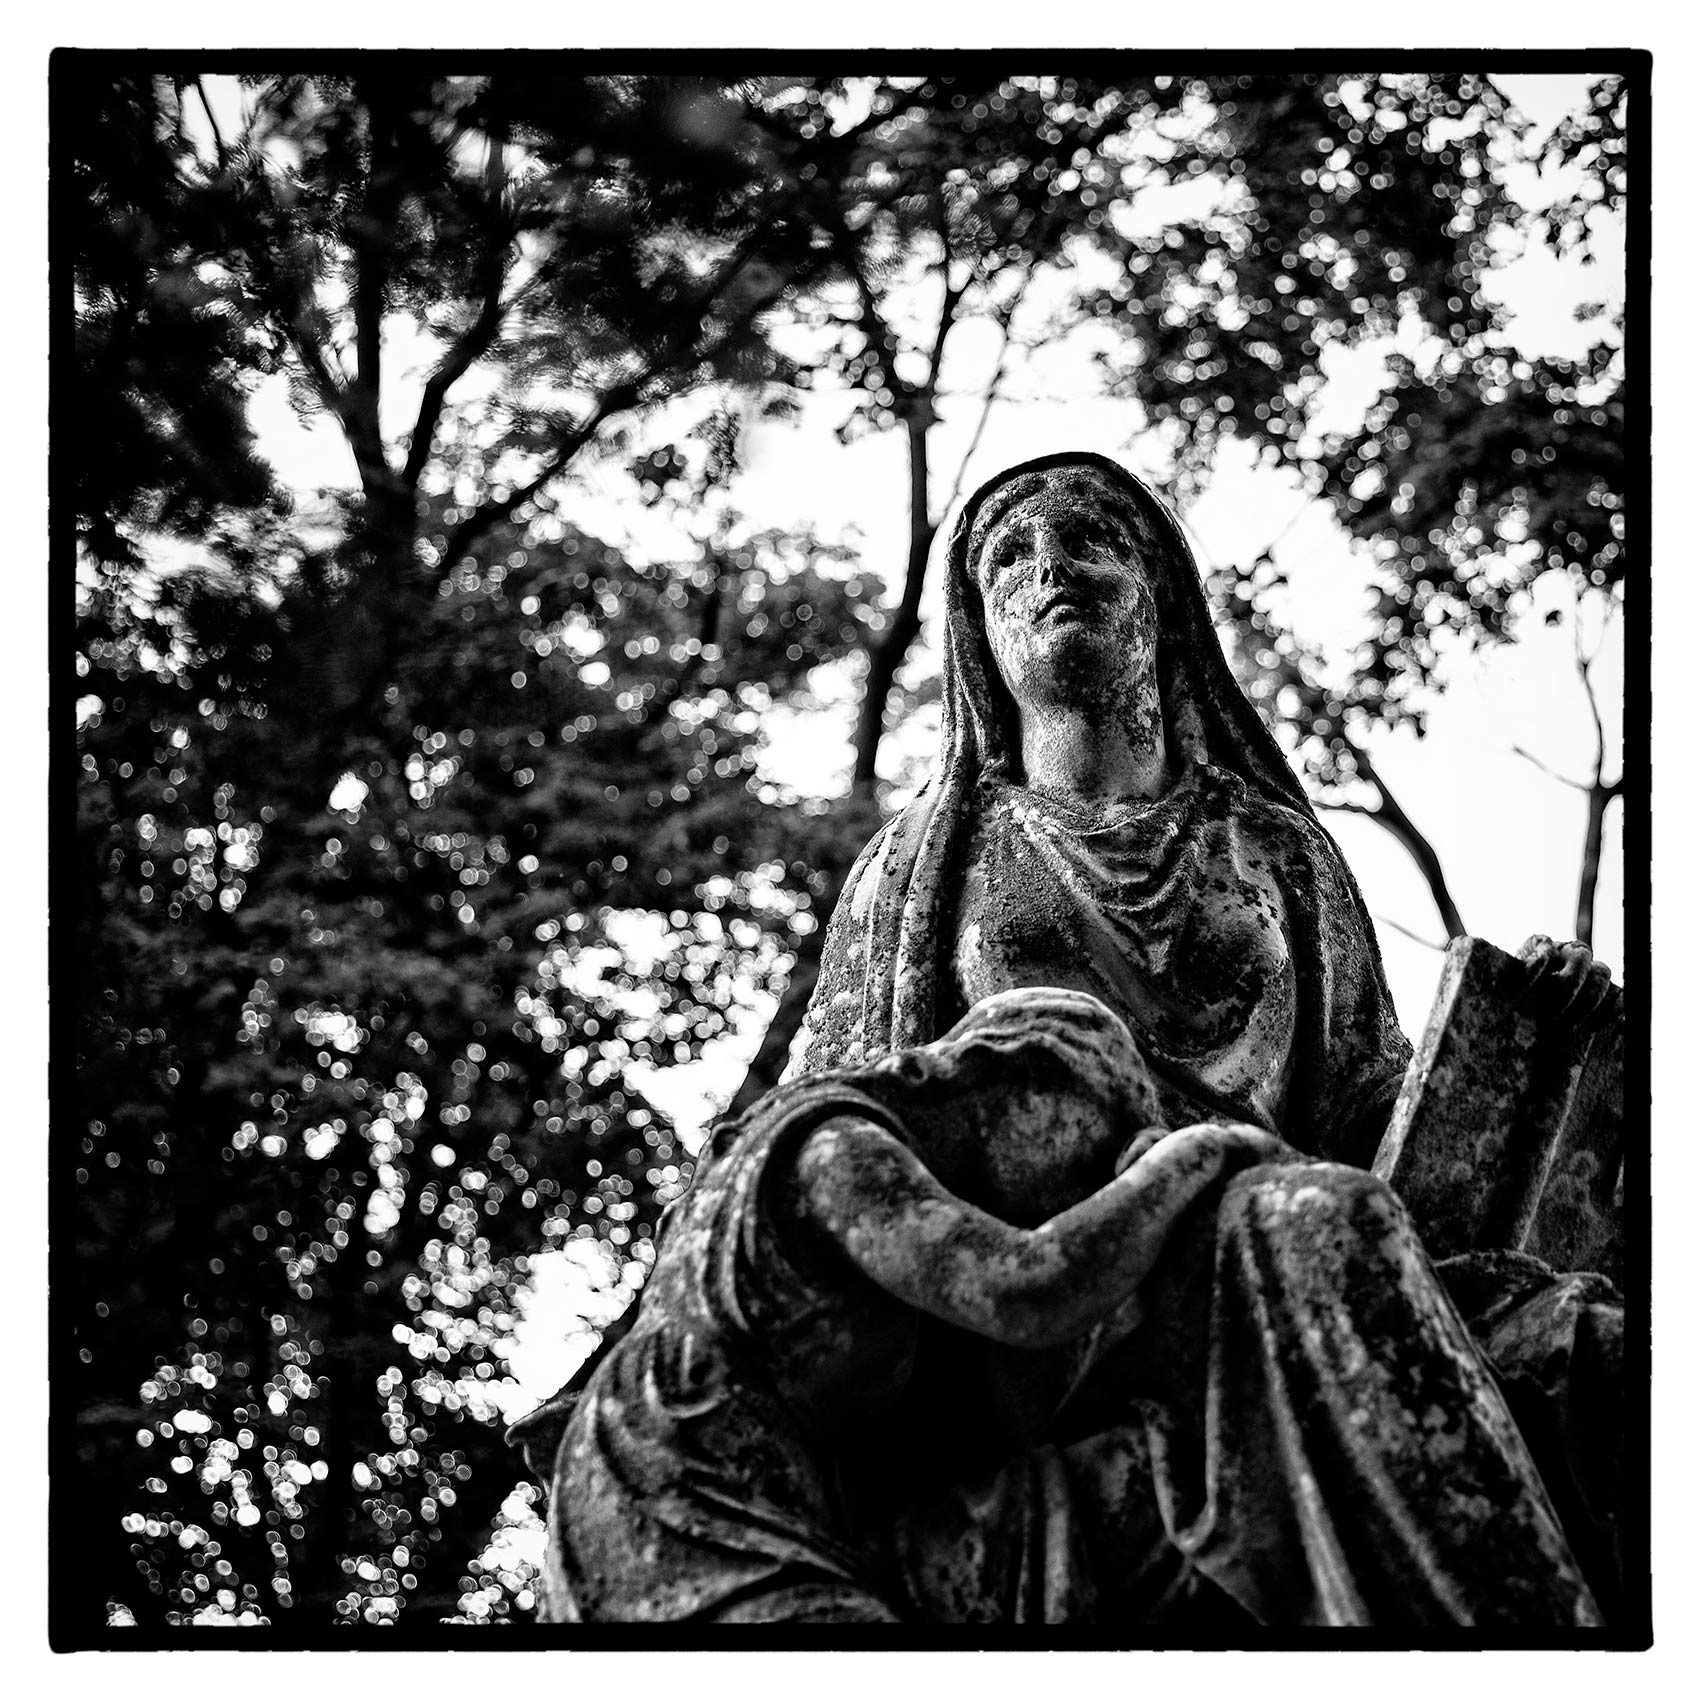 statue of the virgin mary looks towards the sky at St. James Cemetery in Toronto